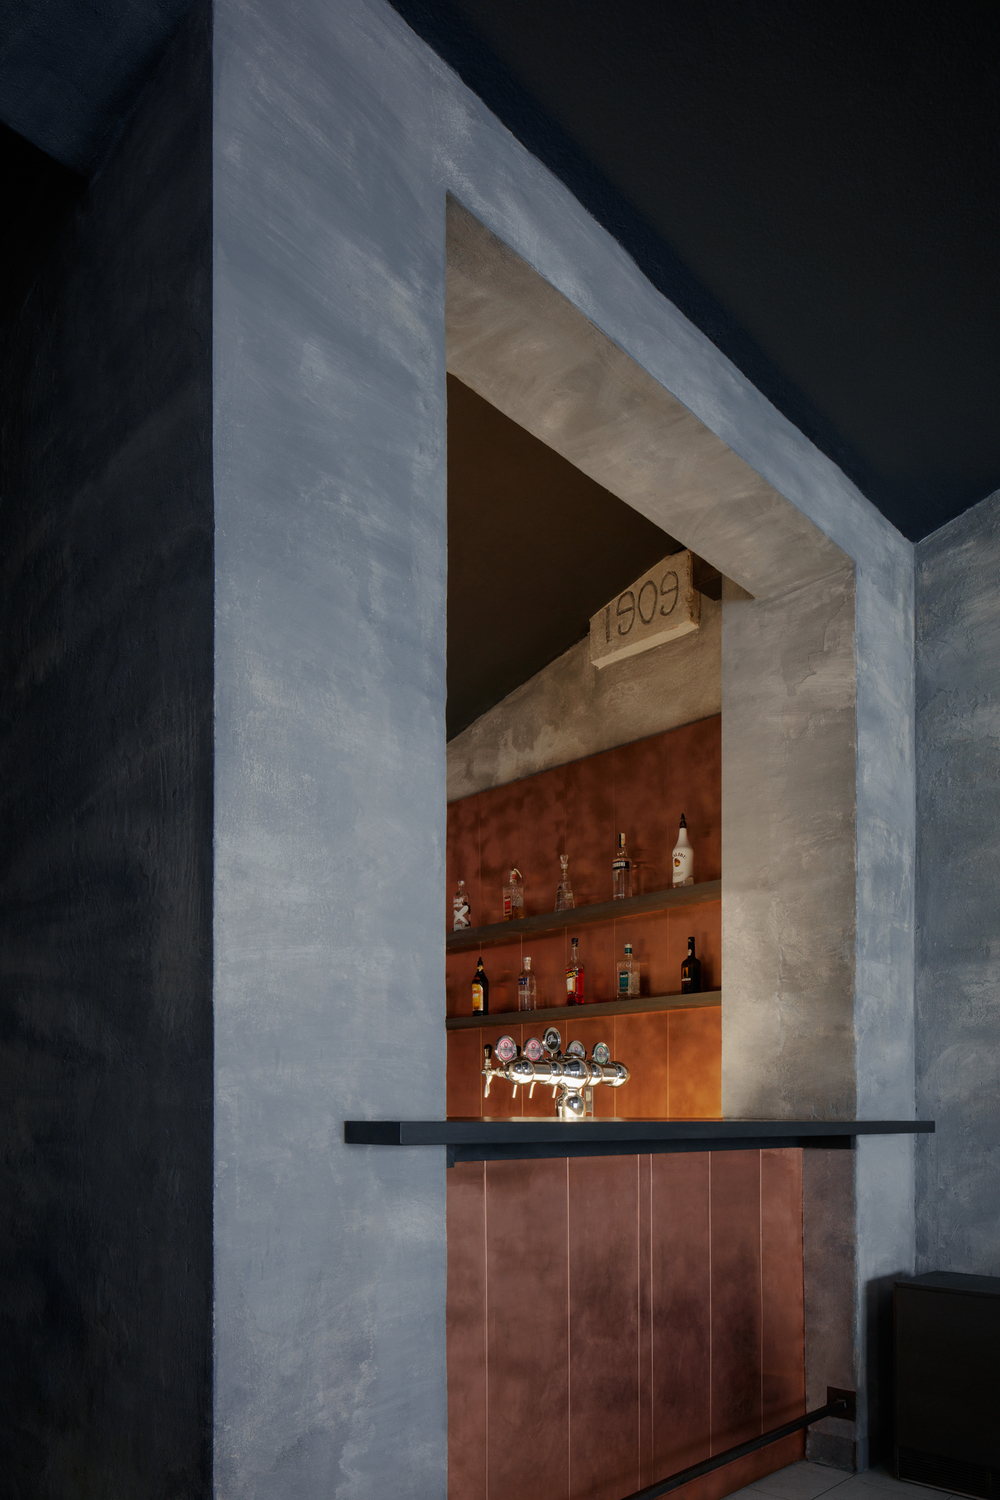 Copper_Bar_Zavoral_architekt_BoysPlayNice_03.jpg